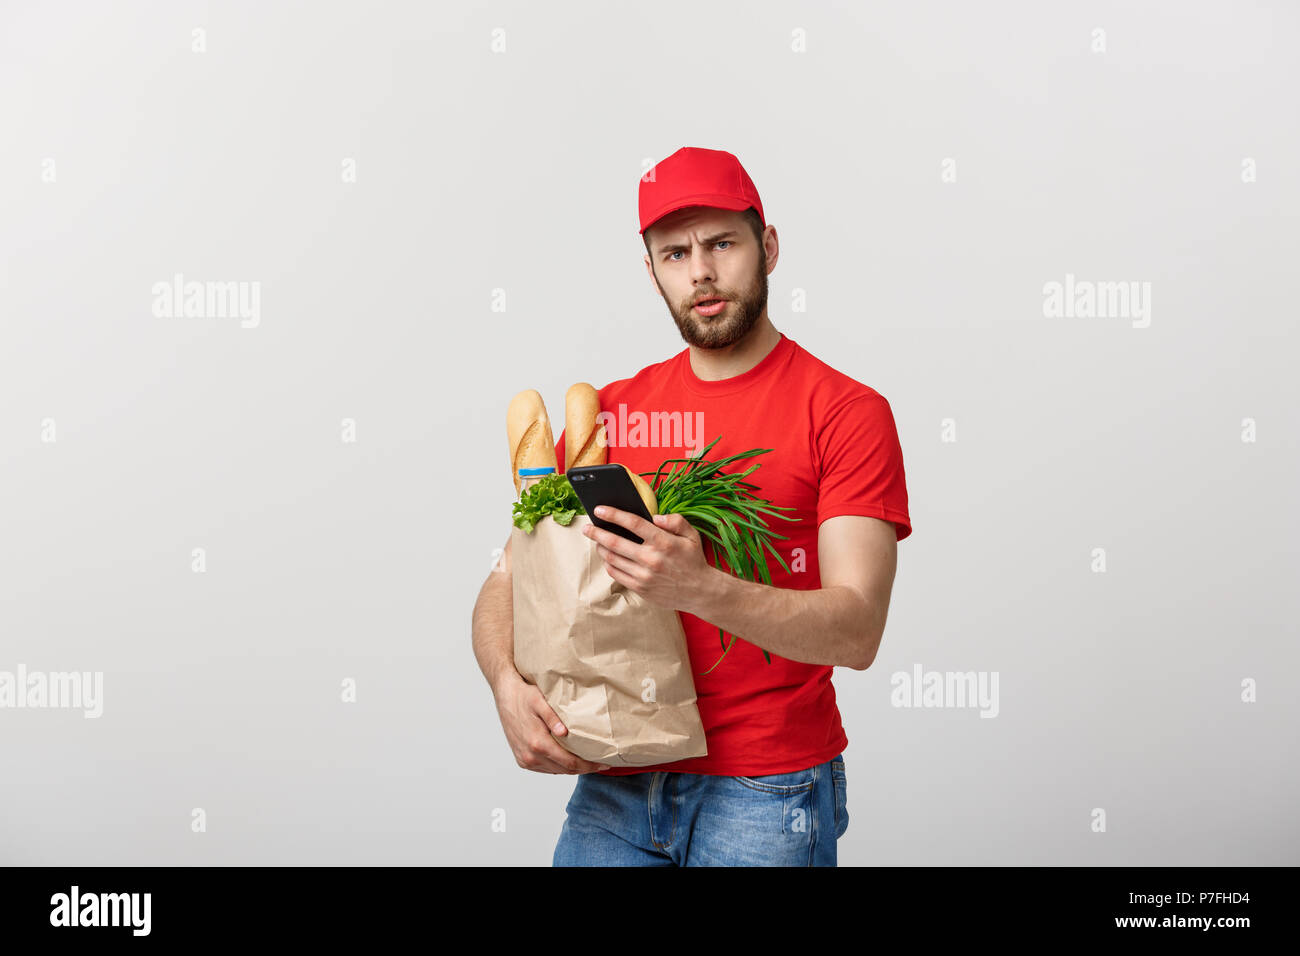 Delivery man holding paper bag with food and shock or angry with something in mobile phone on white background Stock Photo